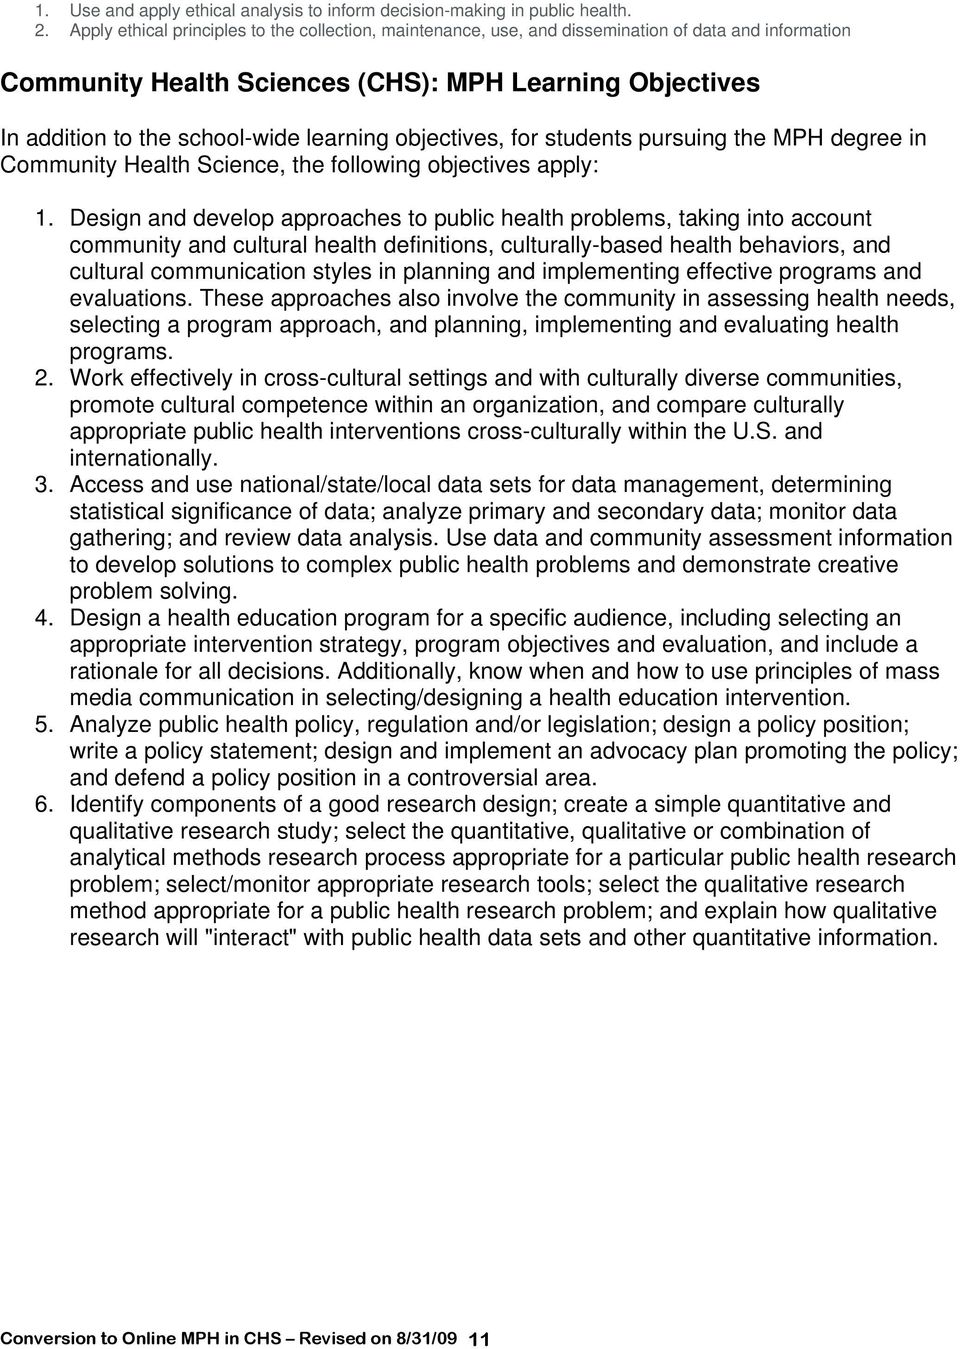 learning objectives, for students pursuing the MPH degree in Community Health Science, the following objectives apply: 1.